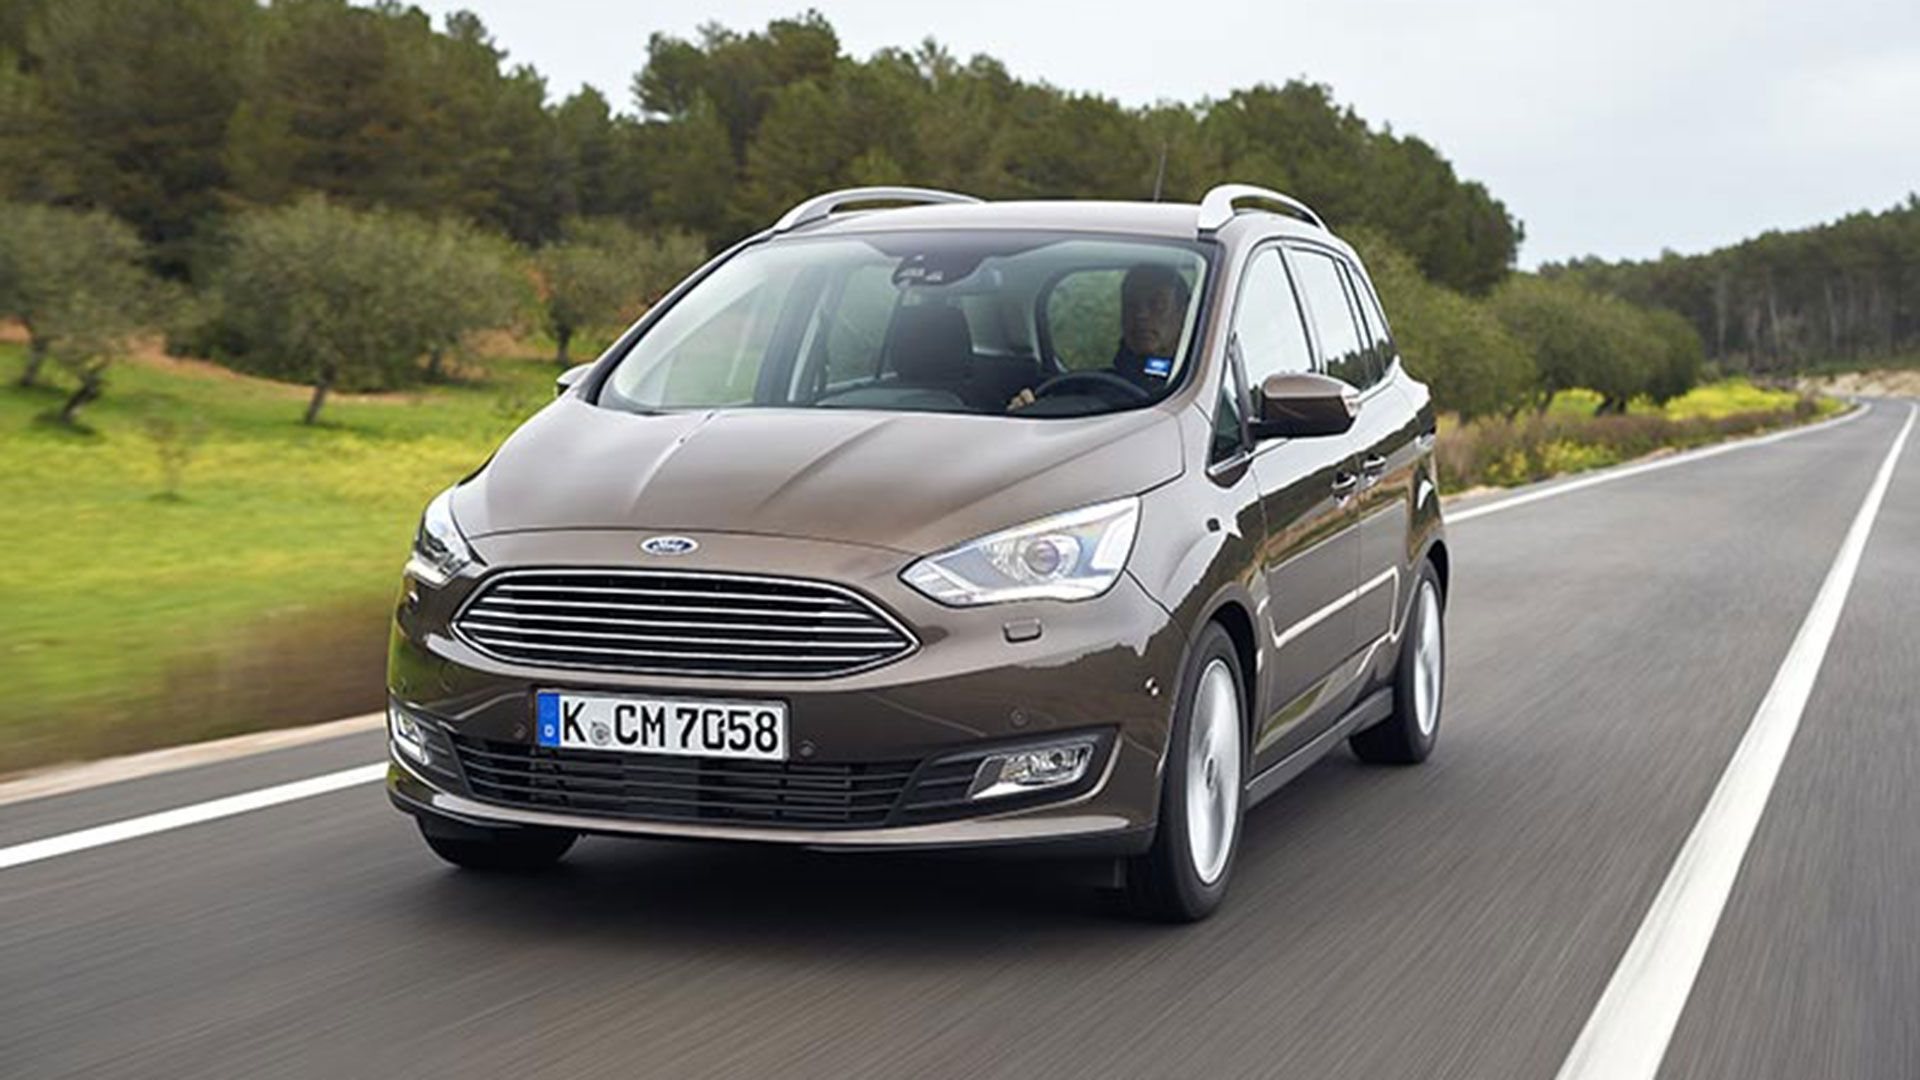 Ford C Max Cars for Sale Near Me Lovely 7 Seater ford Grand C-max Cars for Sale Autotrader Uk